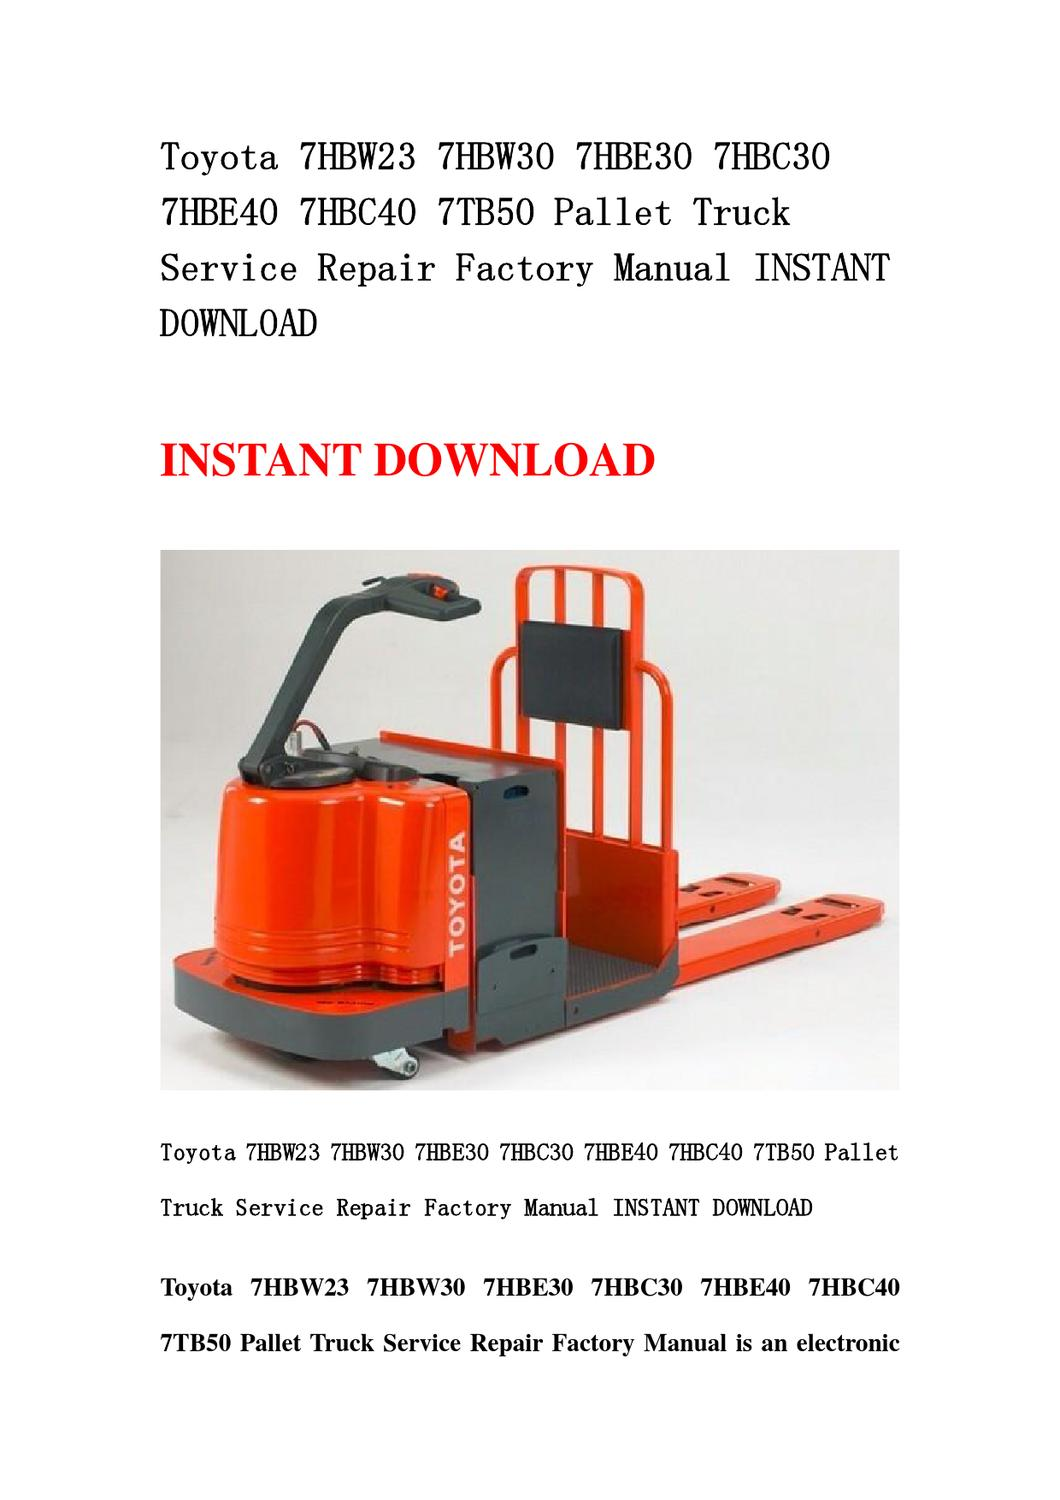 Toyota 7HBW23 7HBW30 7HBE30 7HBC30 7HBE40 7HBC40 7TB50 Pallet Truck Service  Repair Factory Manual IN by chen jius - issuu